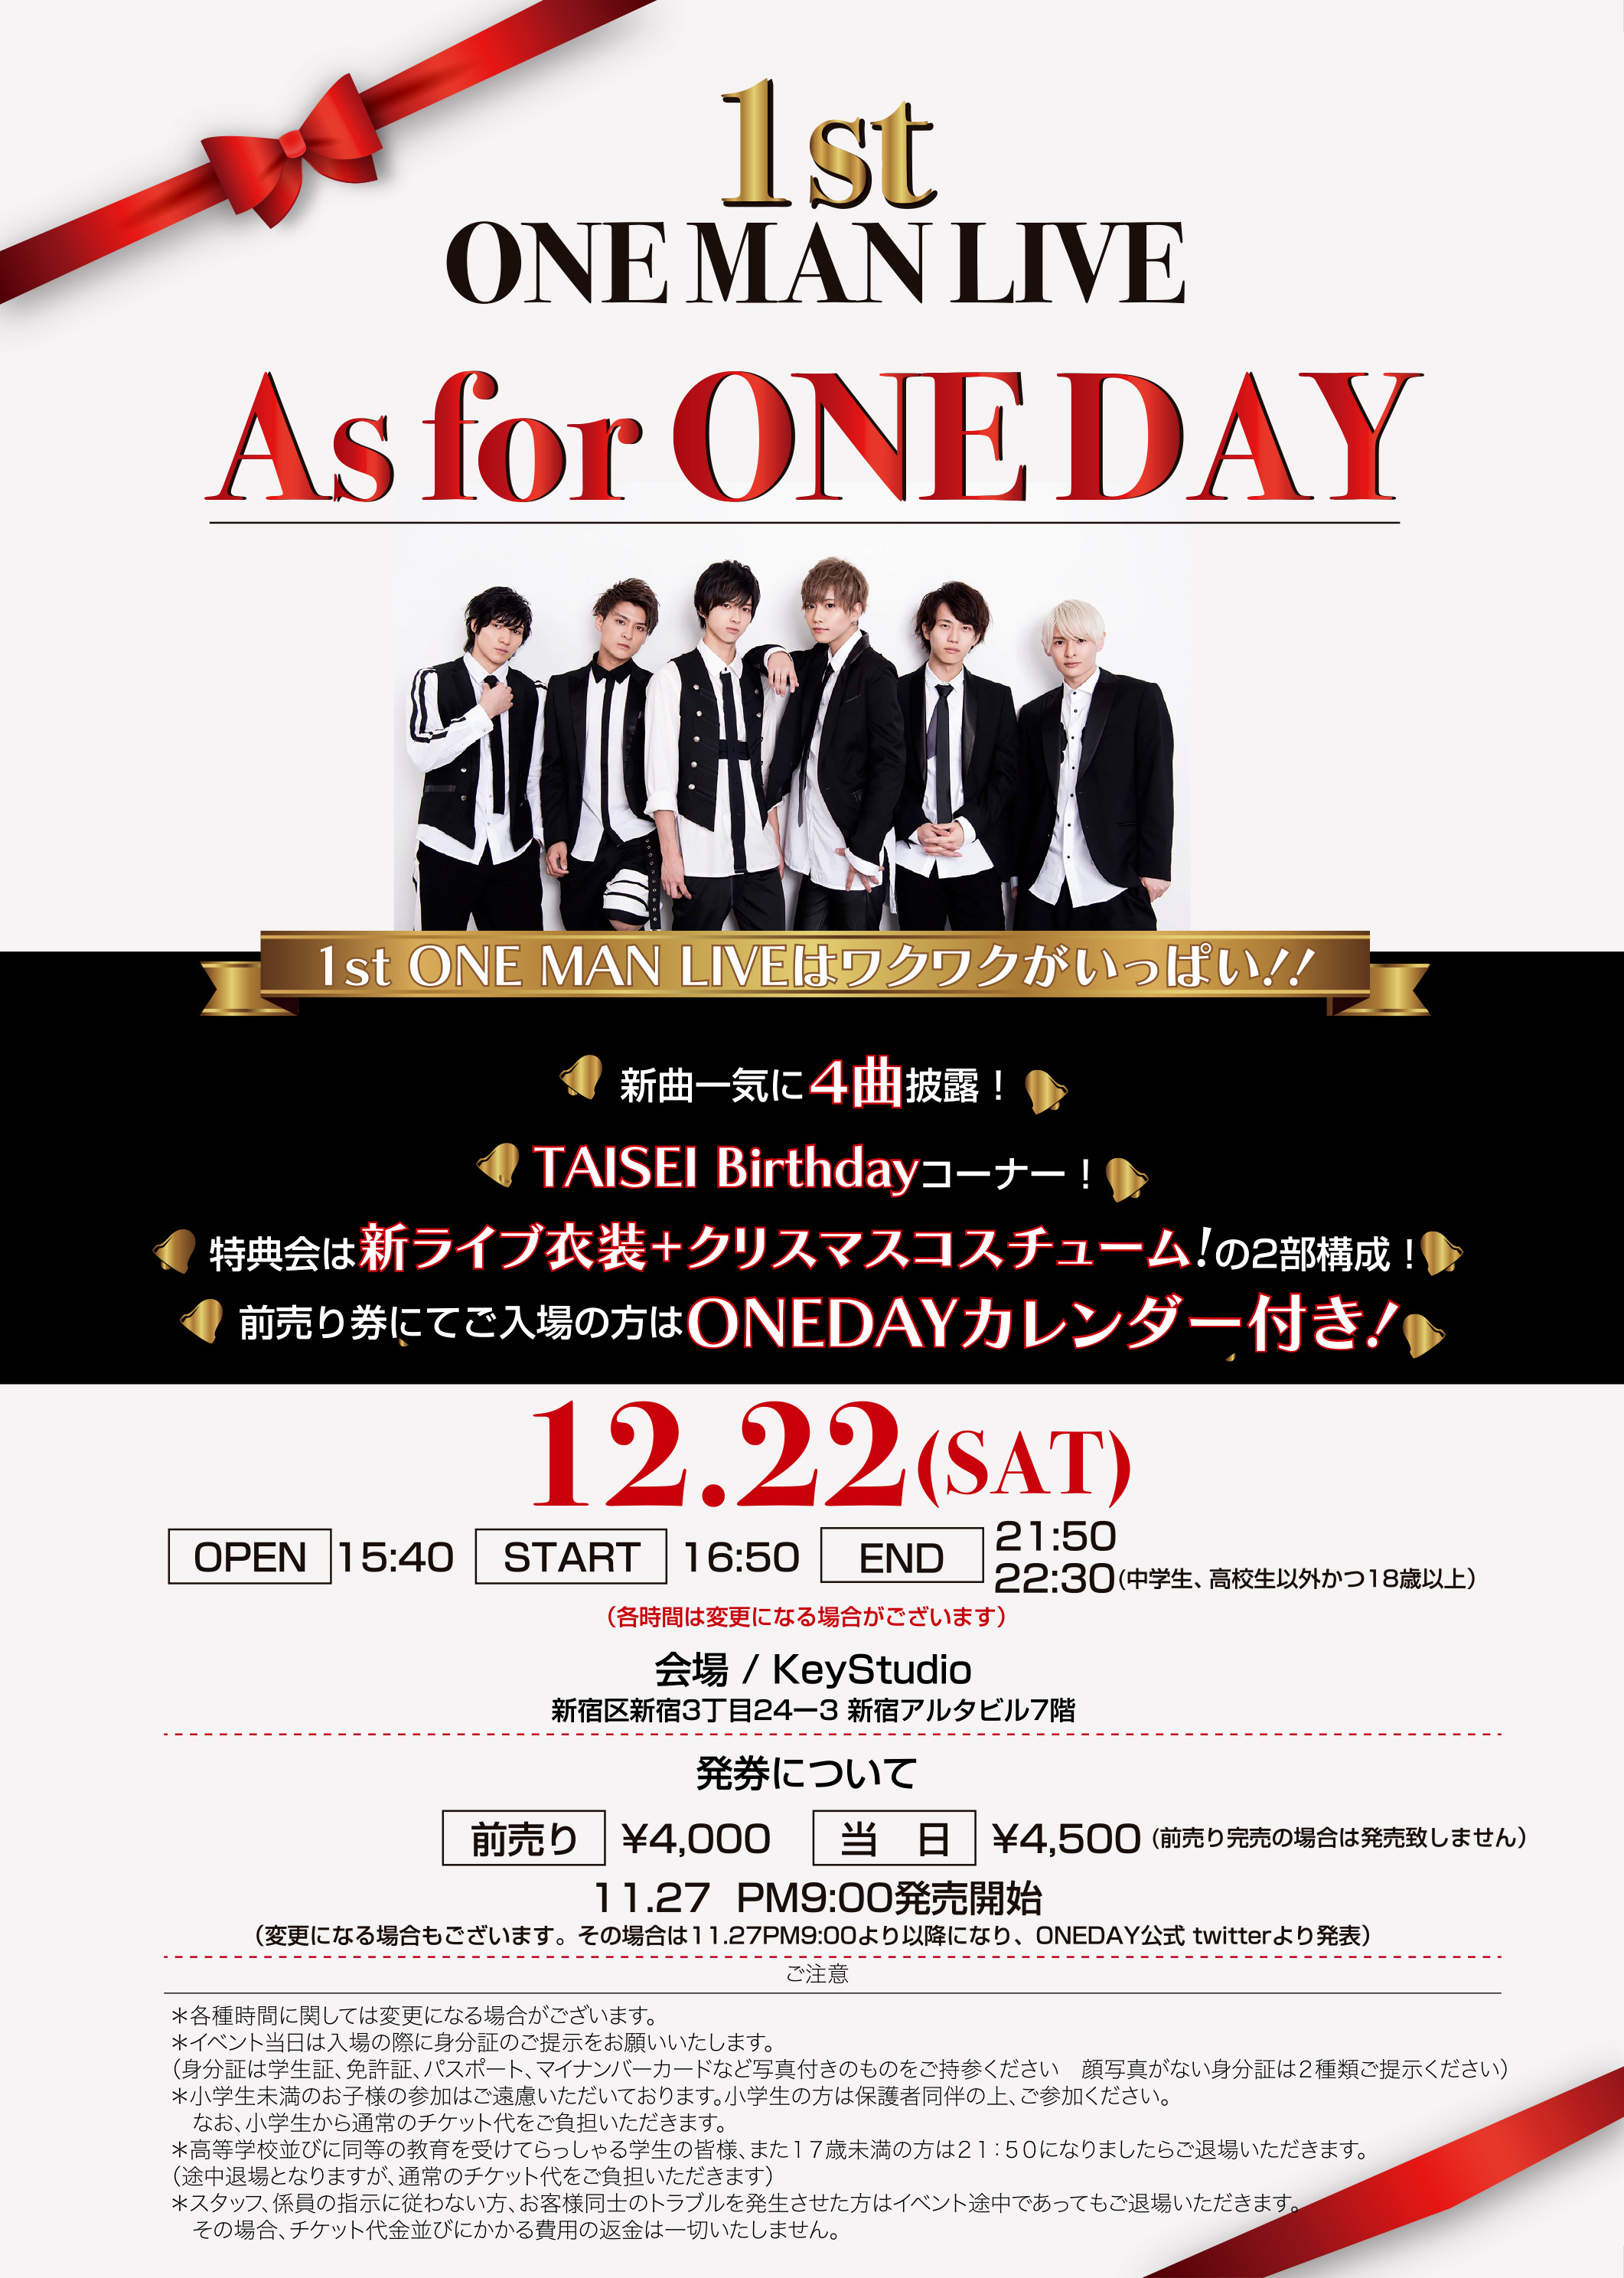 one day 1stワンマンライブ as for one day のチケット情報 予約